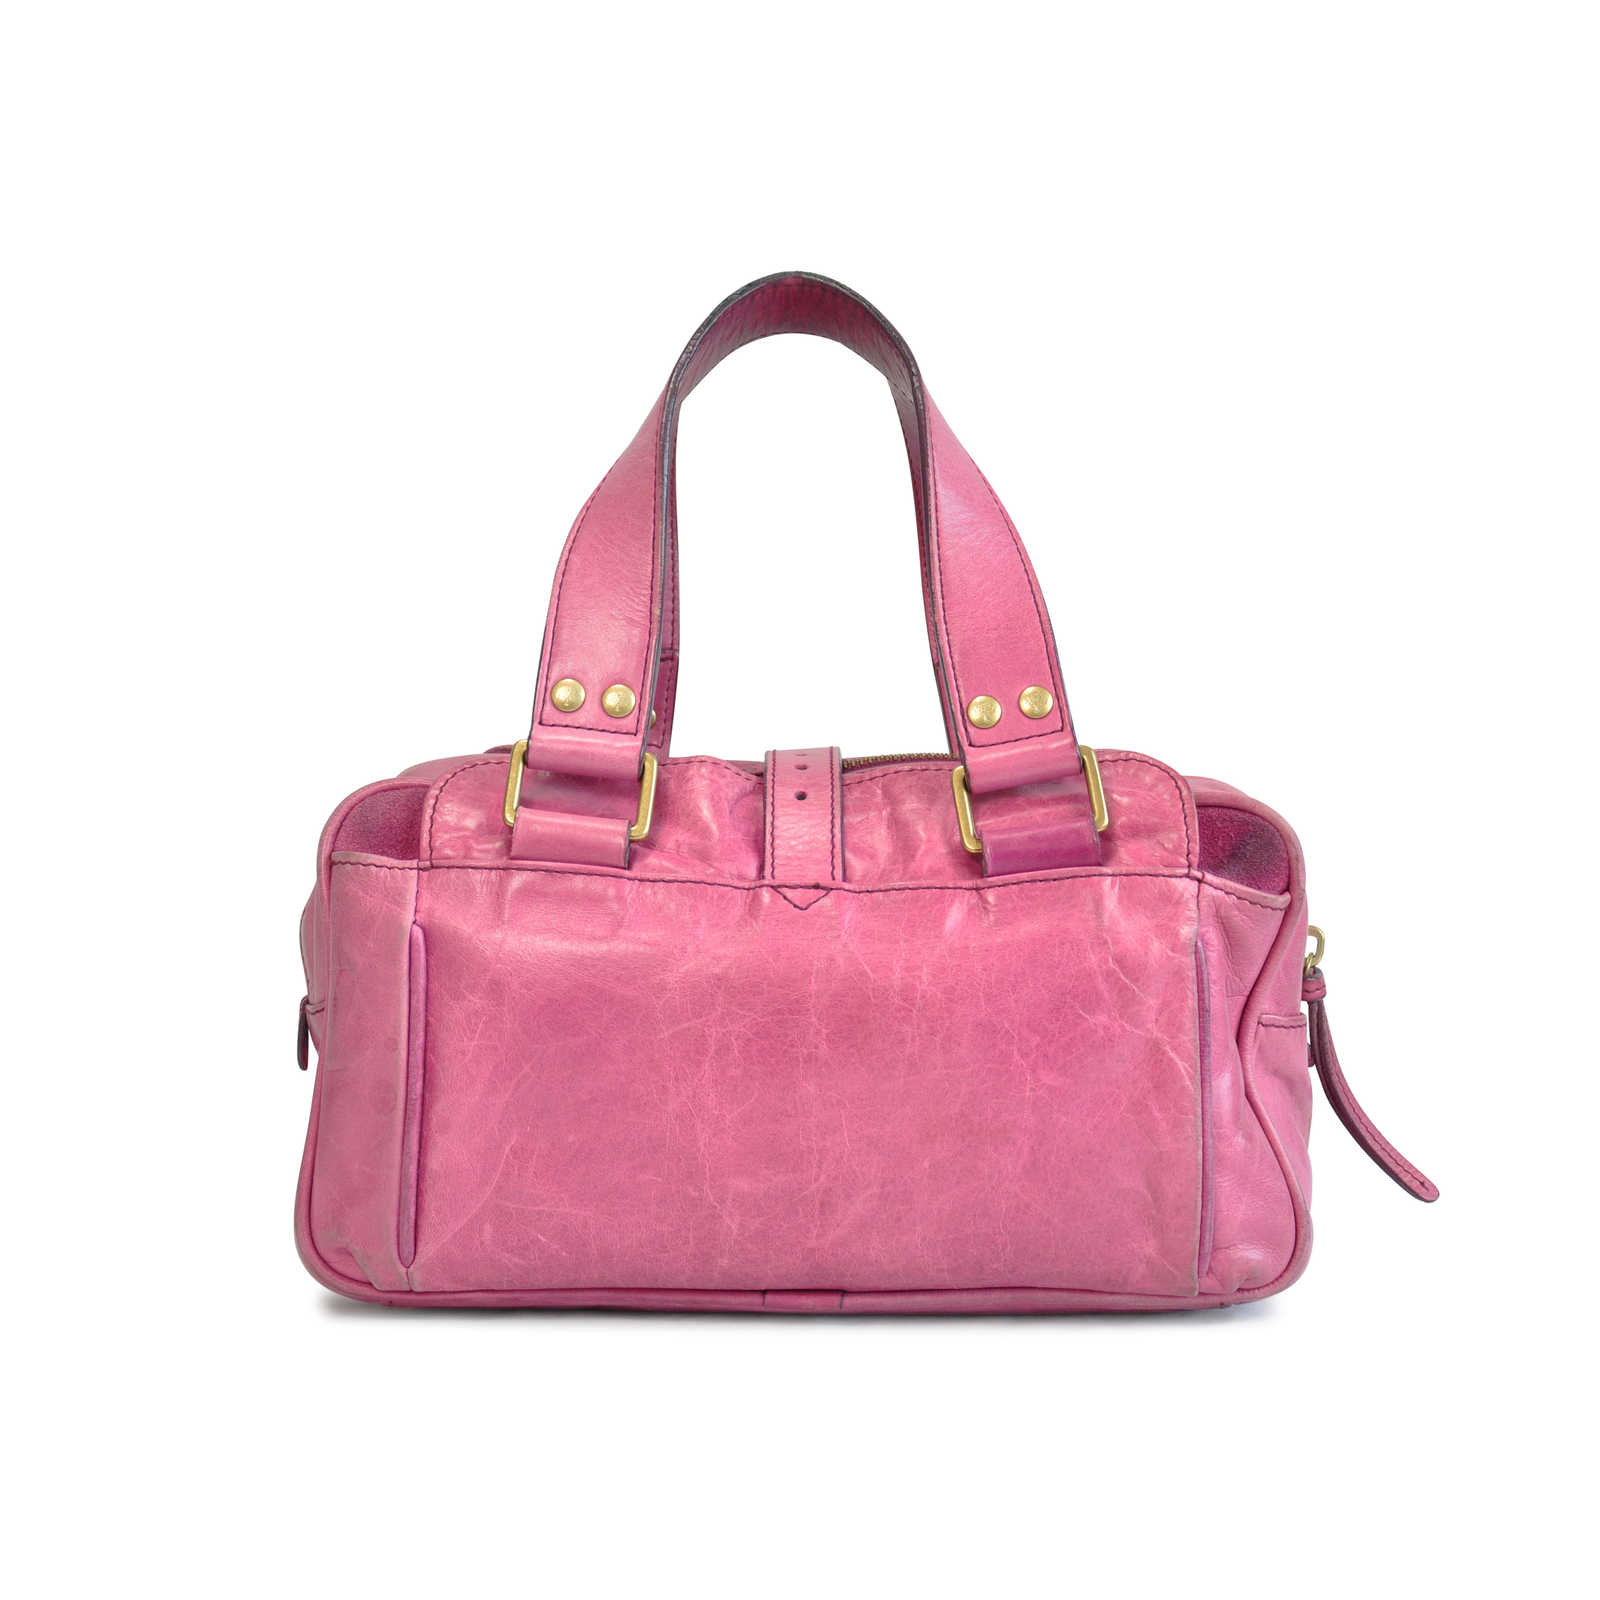 Authentic Pre Owned Mulberry Zippered Handbag Pss 124 00010 Thumbnail 1